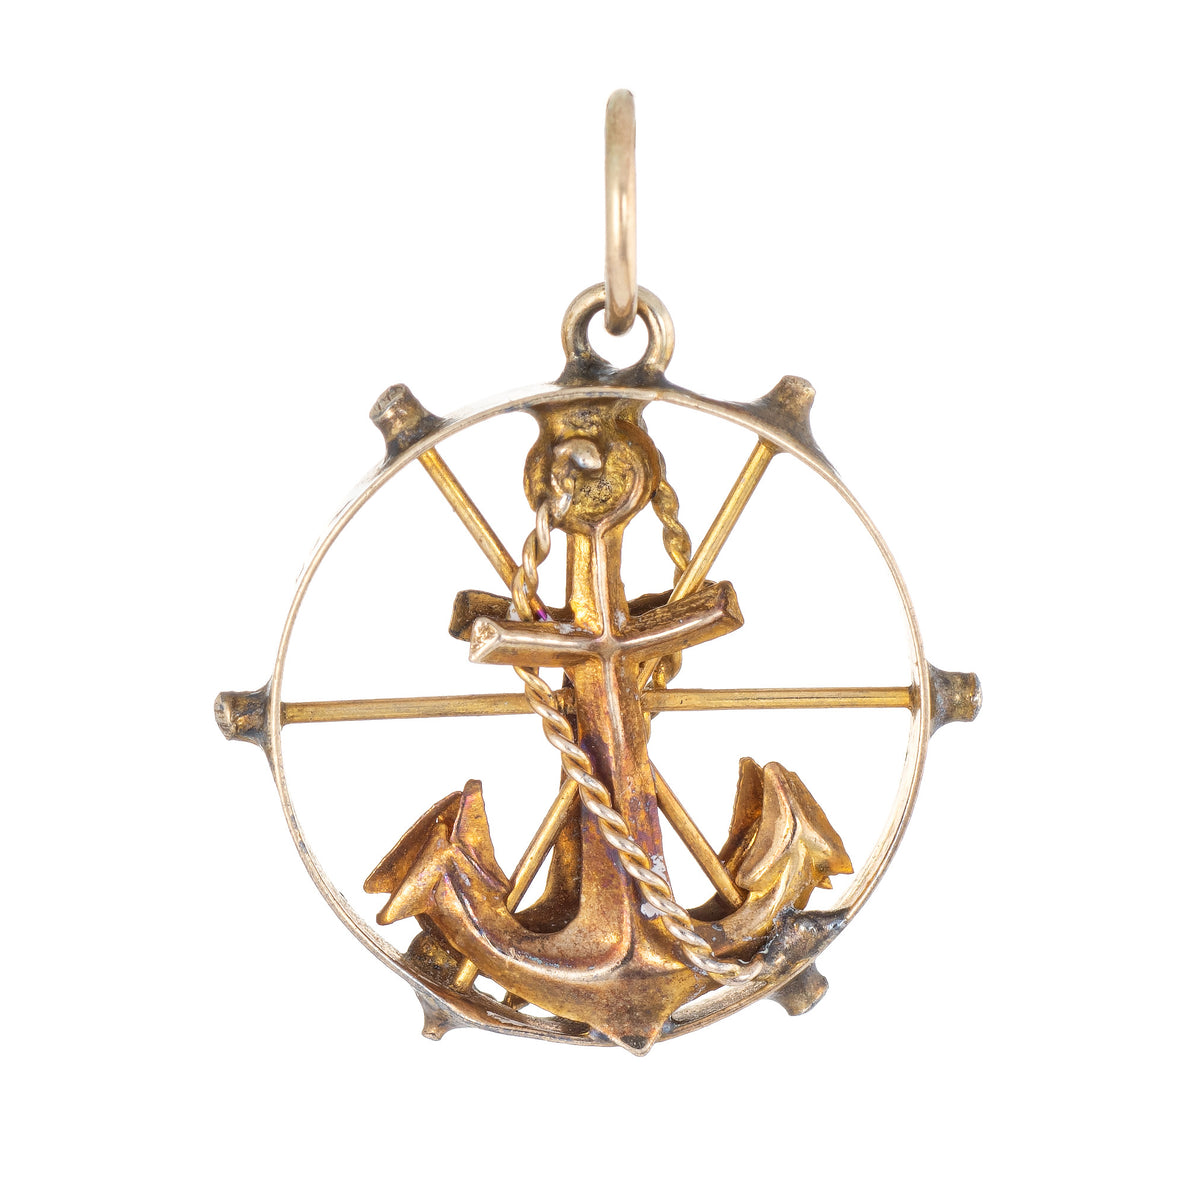 14K Solid Yellow Gold Anchor Pendant Singapore Chain Necklace Set Mariner Nautical Rope Charm